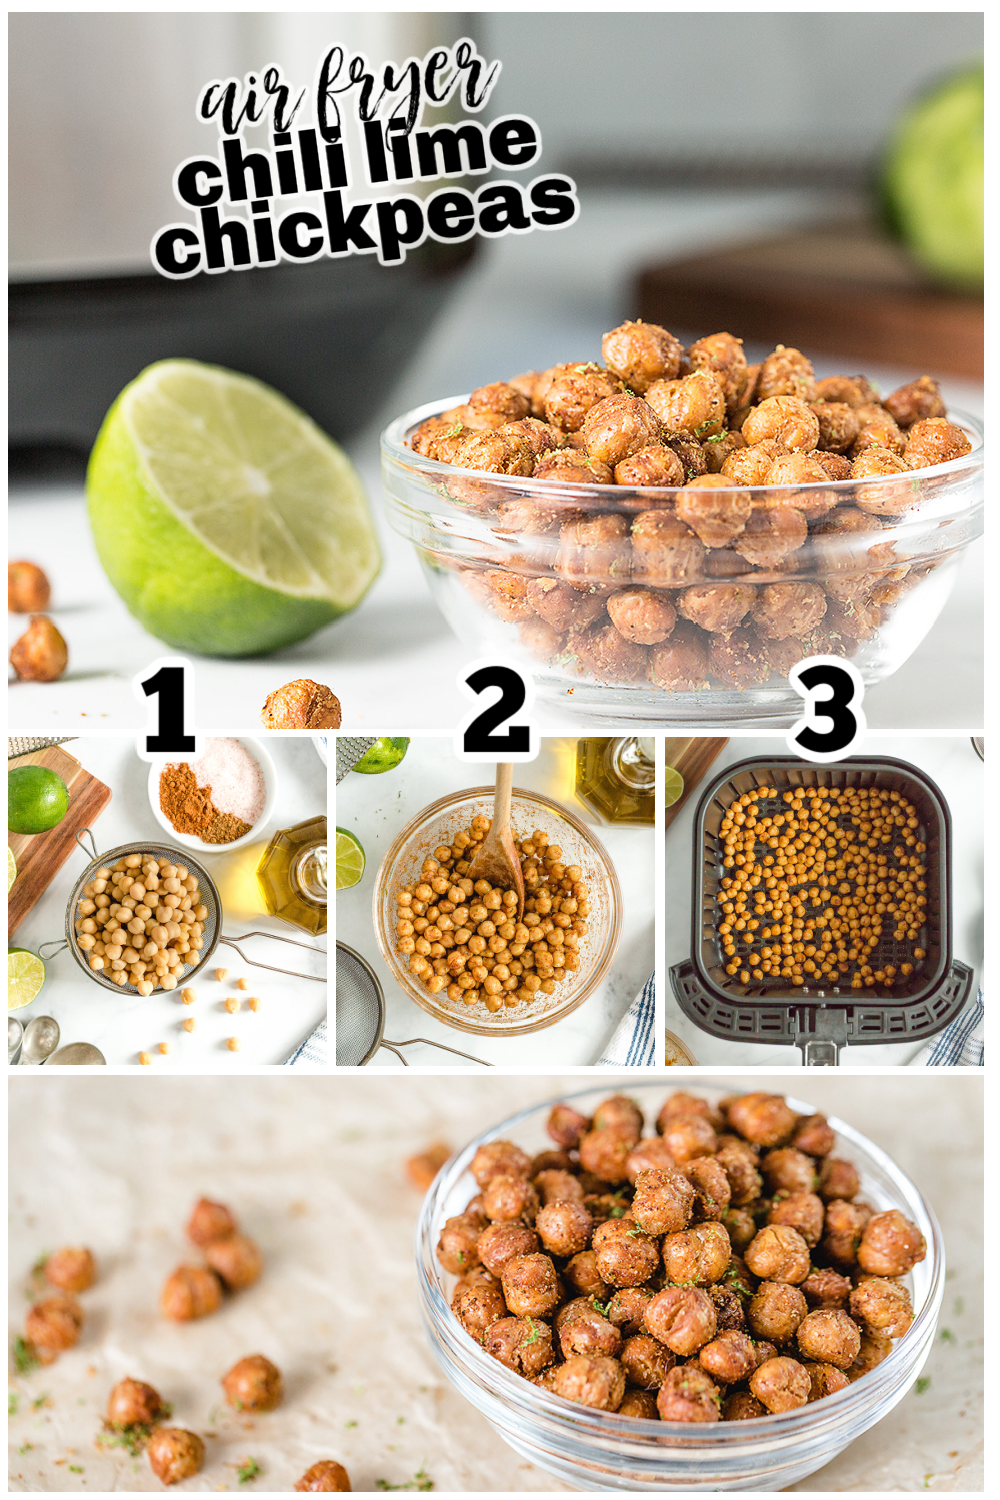 Chickpeas are a great diet-friendly, healthy snack.  This recipe brings a Mexican inspired flare to the chickpeas.  #recipes #airfryer #garbanzobeans